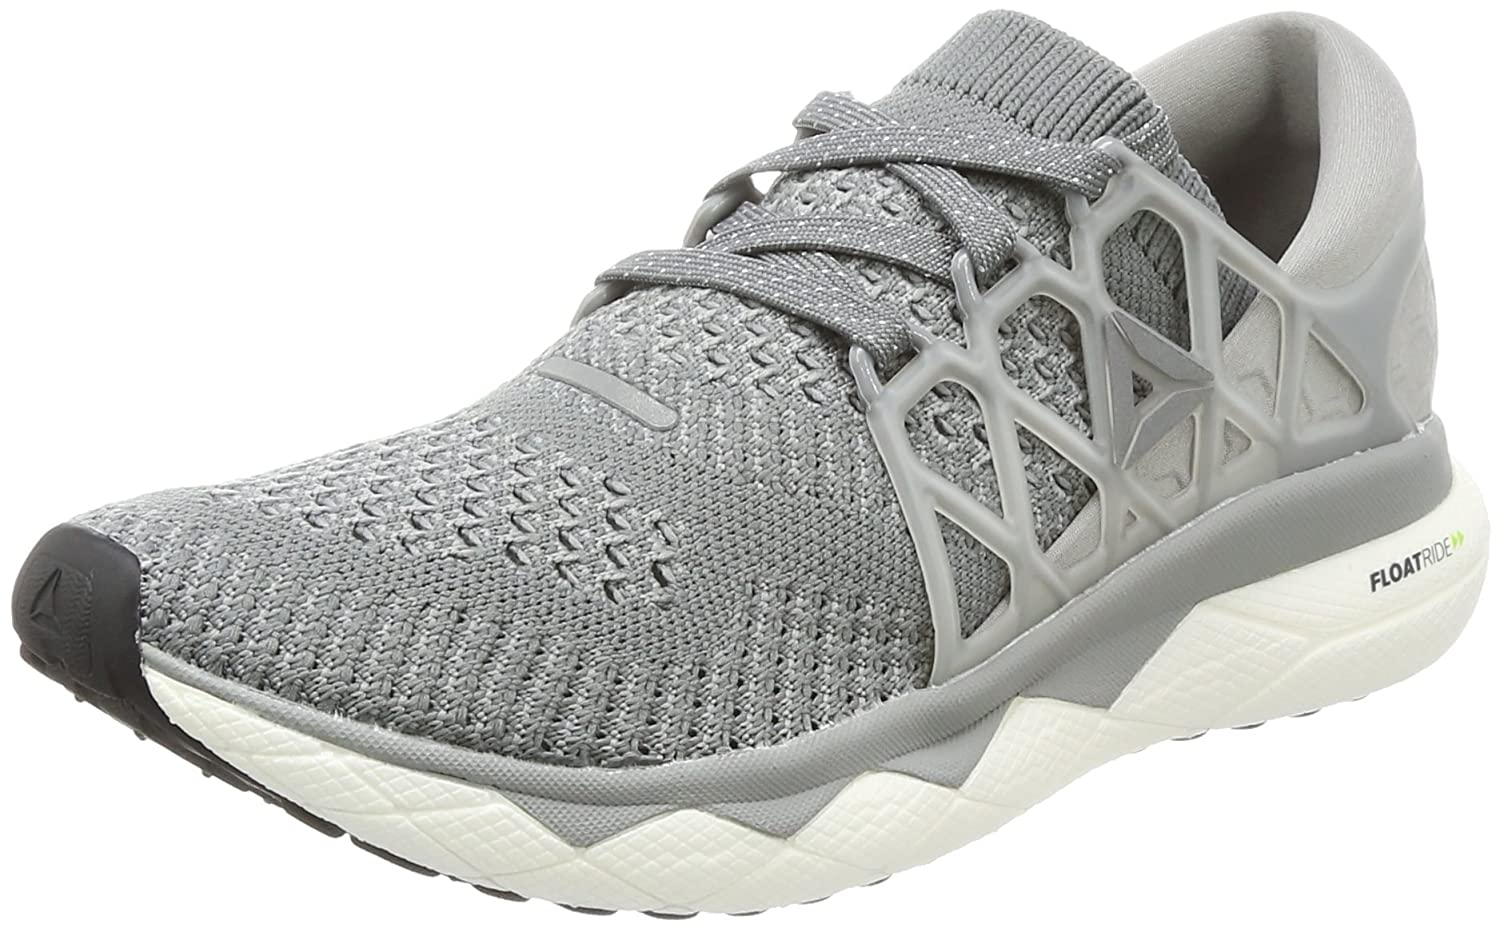 0cf9acfd0a290 Reebok Women s Floatride Nite Running Shoes